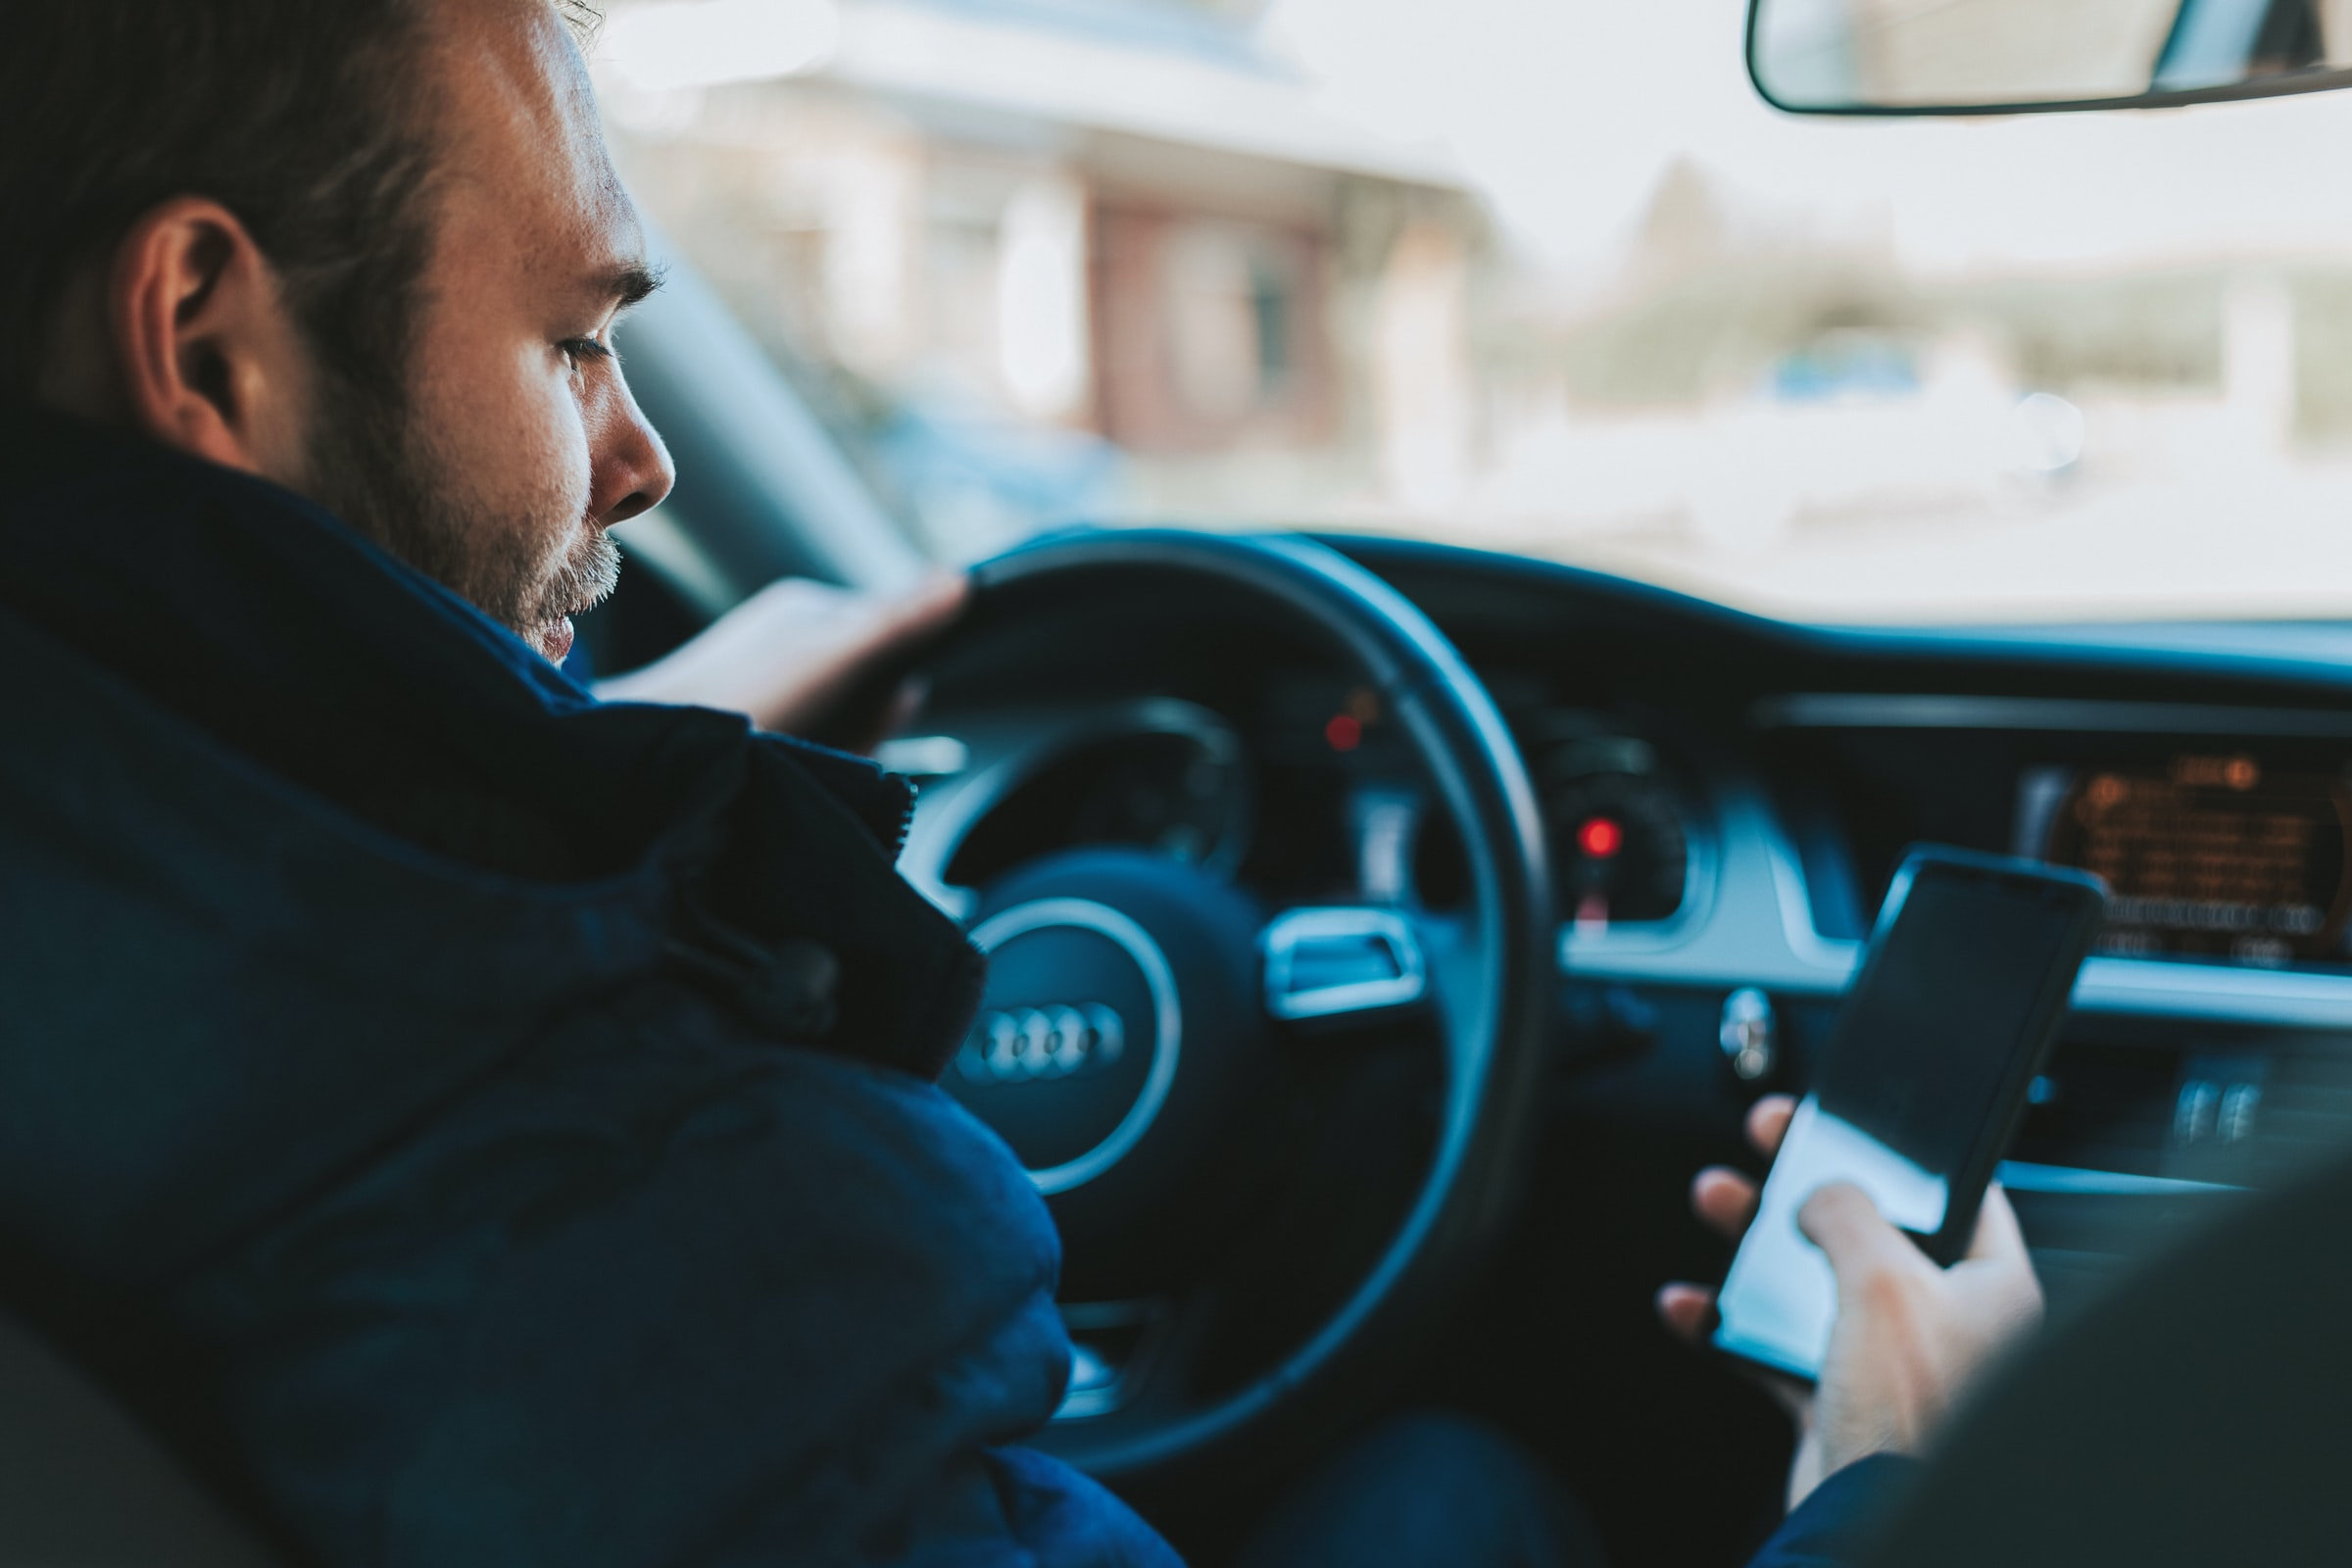 Why Is Distracted Driving Considered Dangerous In The US?